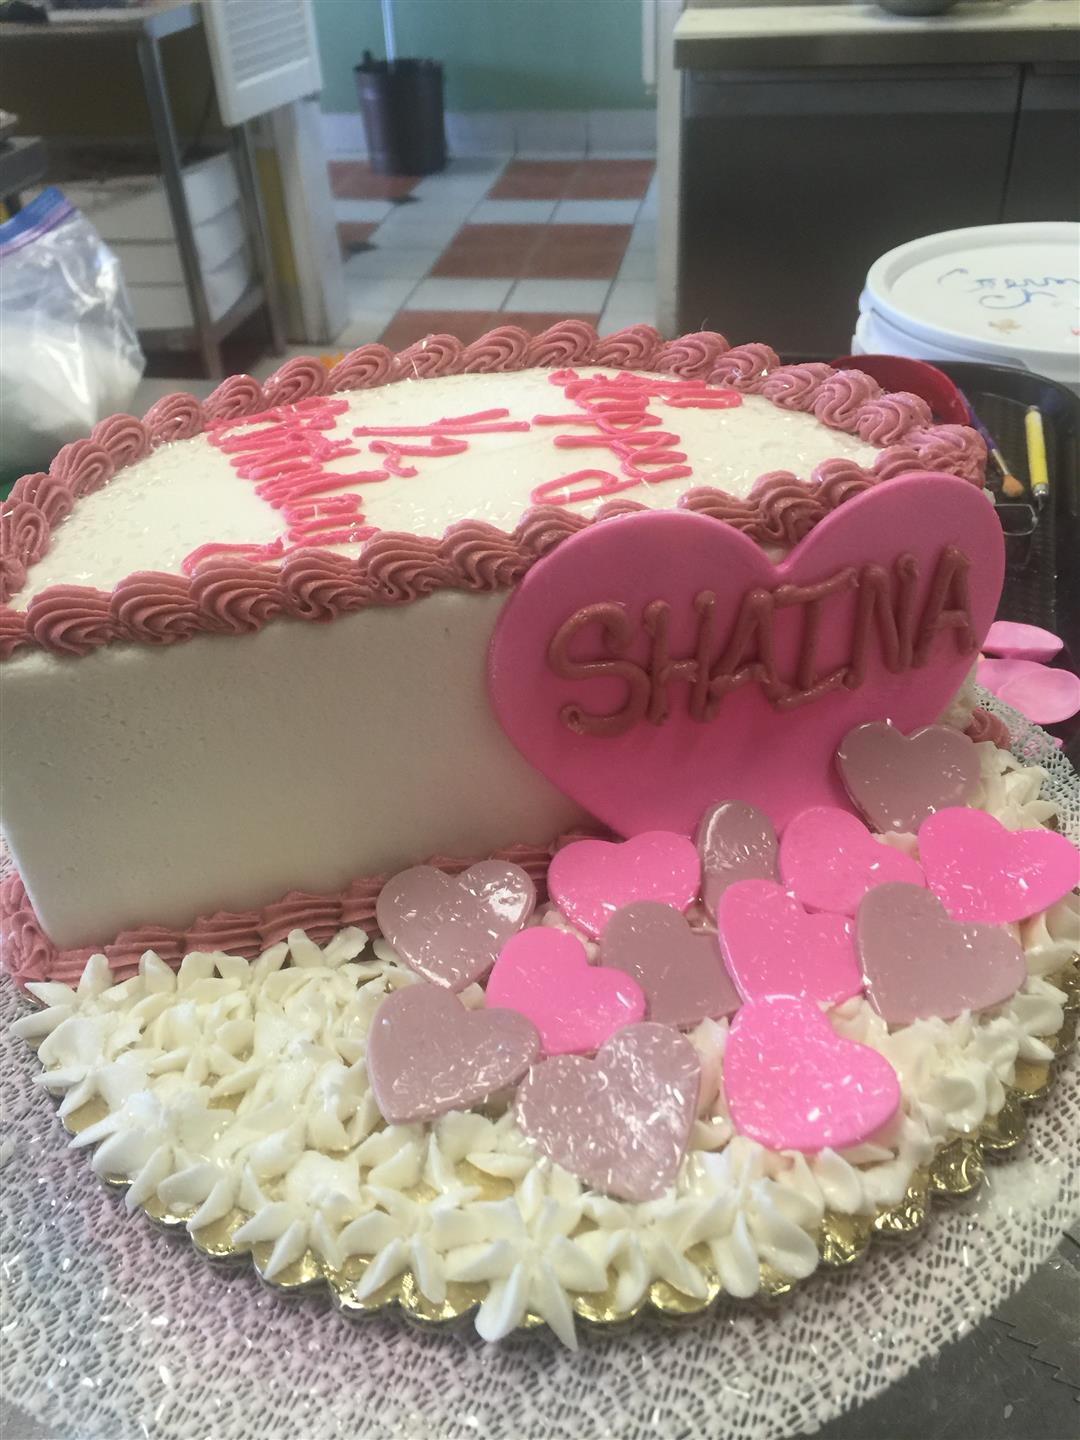 a valentine's day cake with hearts